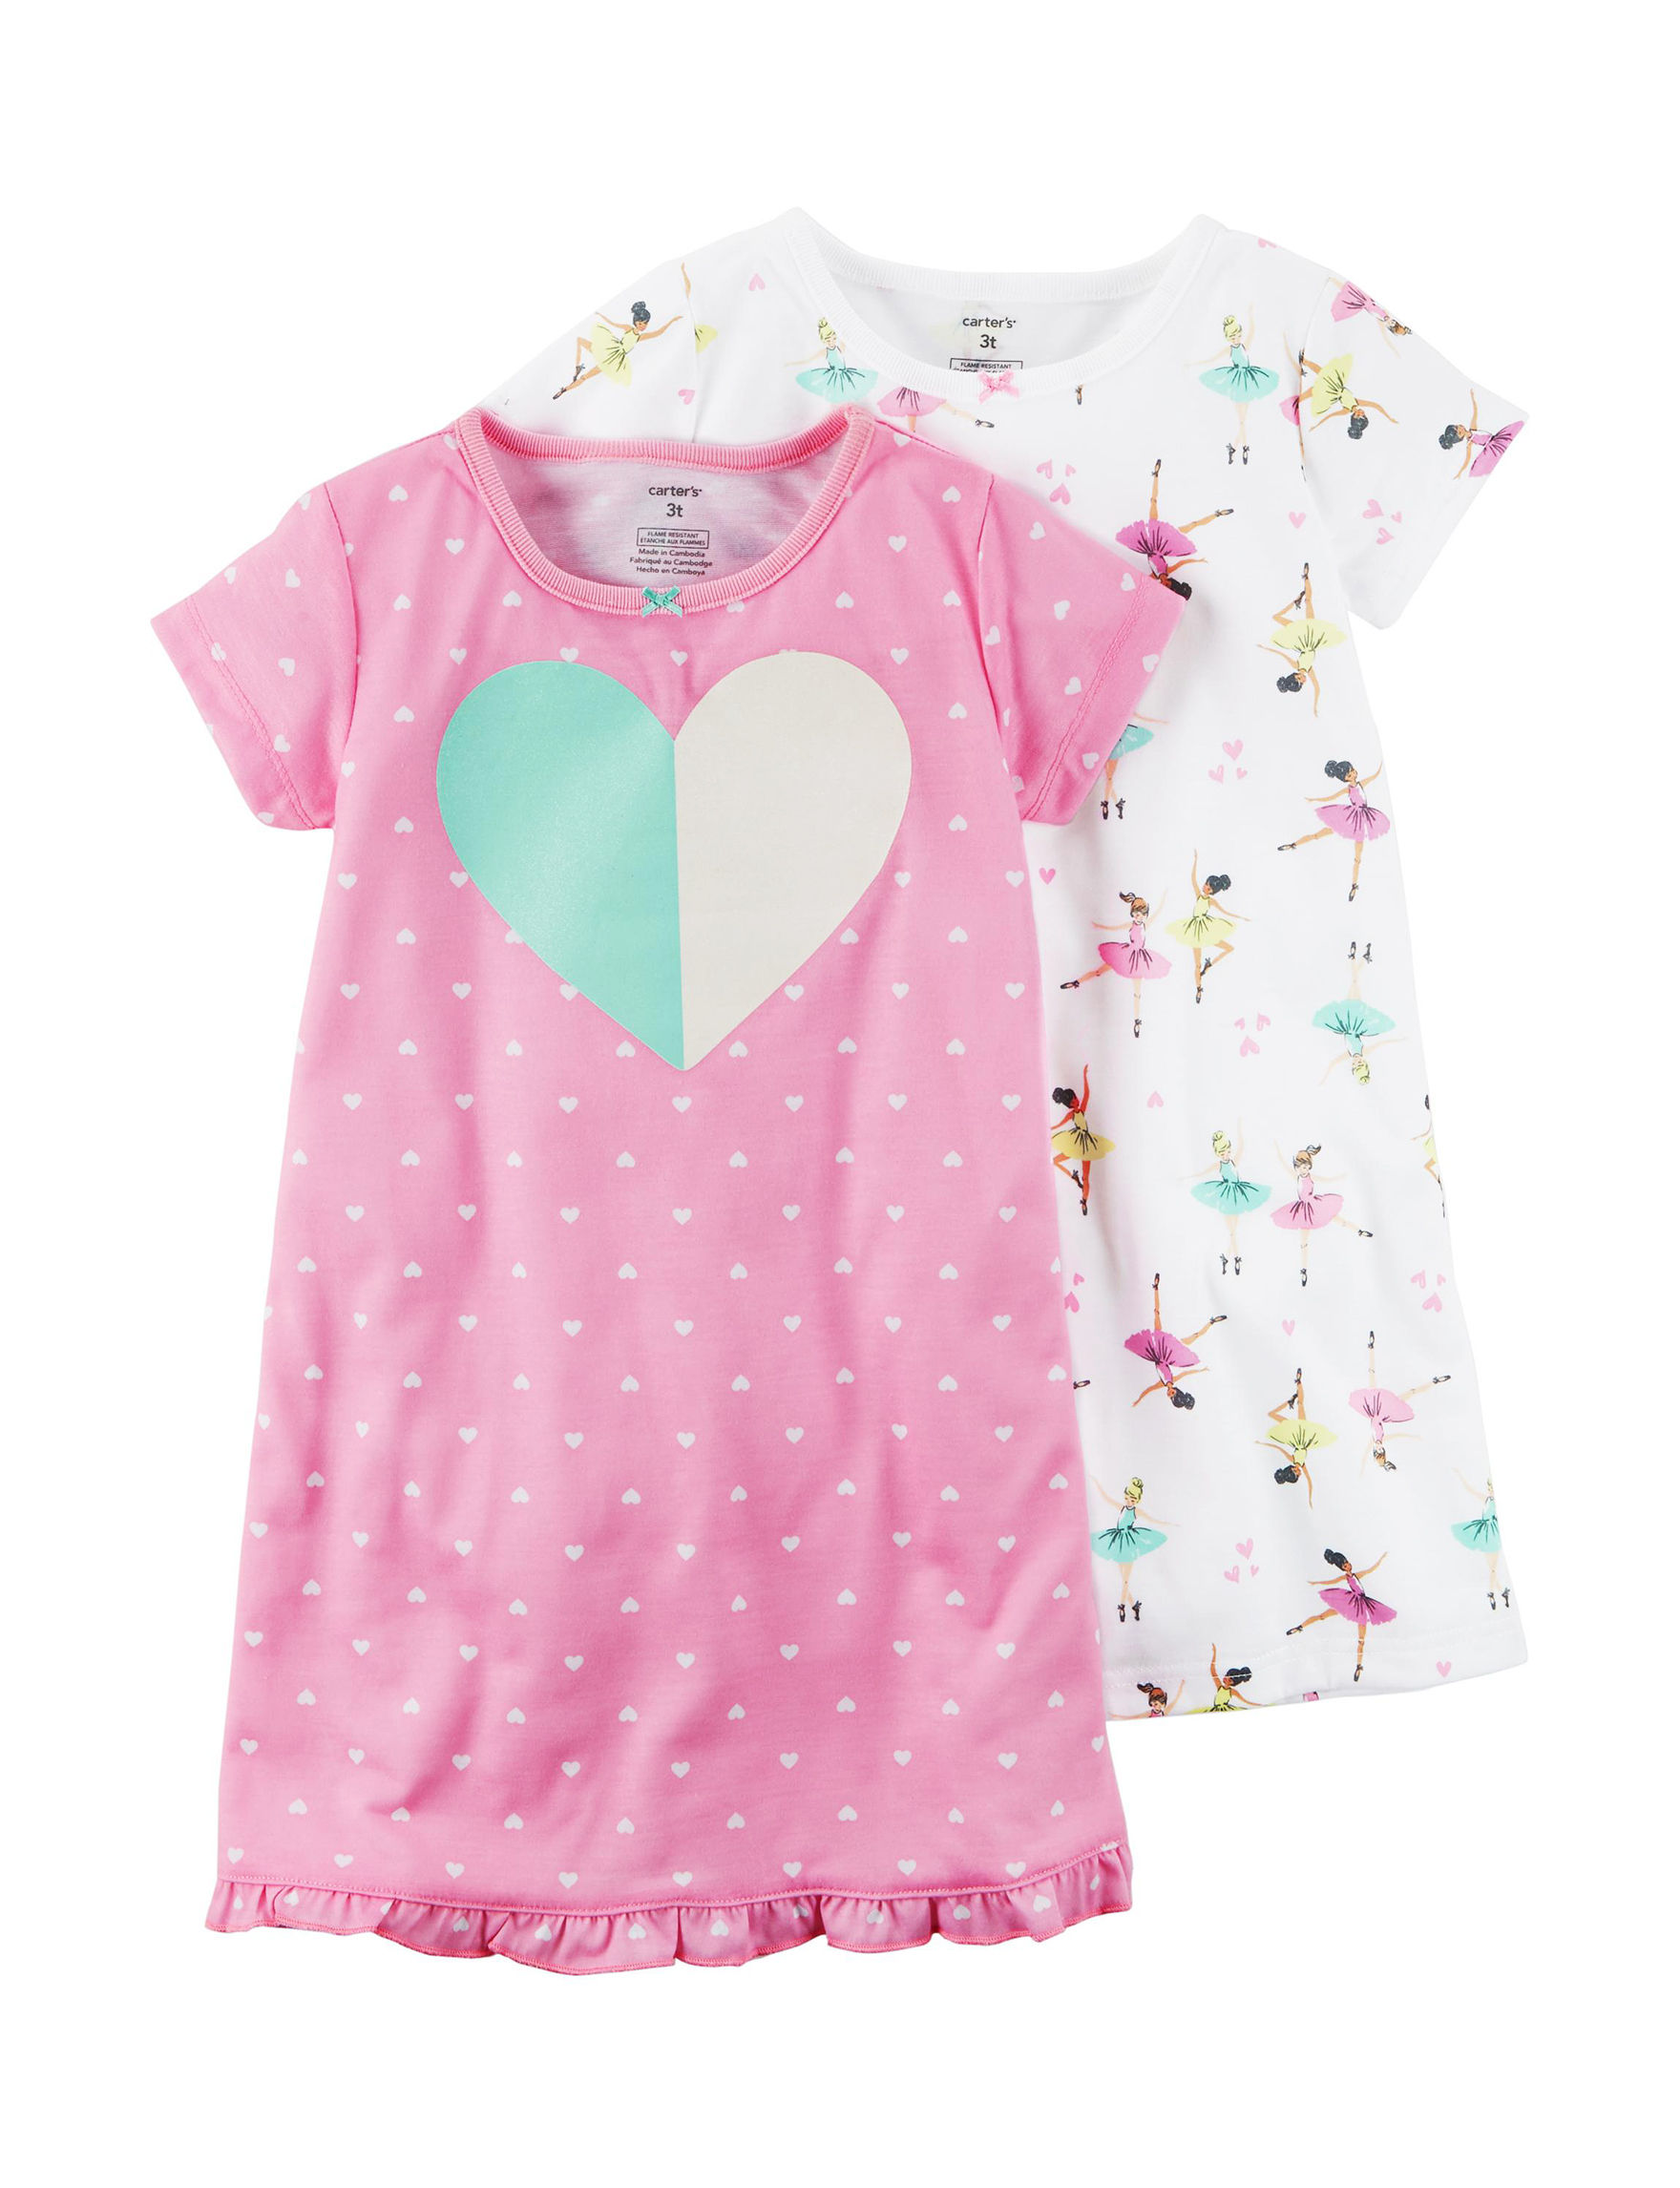 Carter's Pink / White Nightgowns & Sleep Shirts